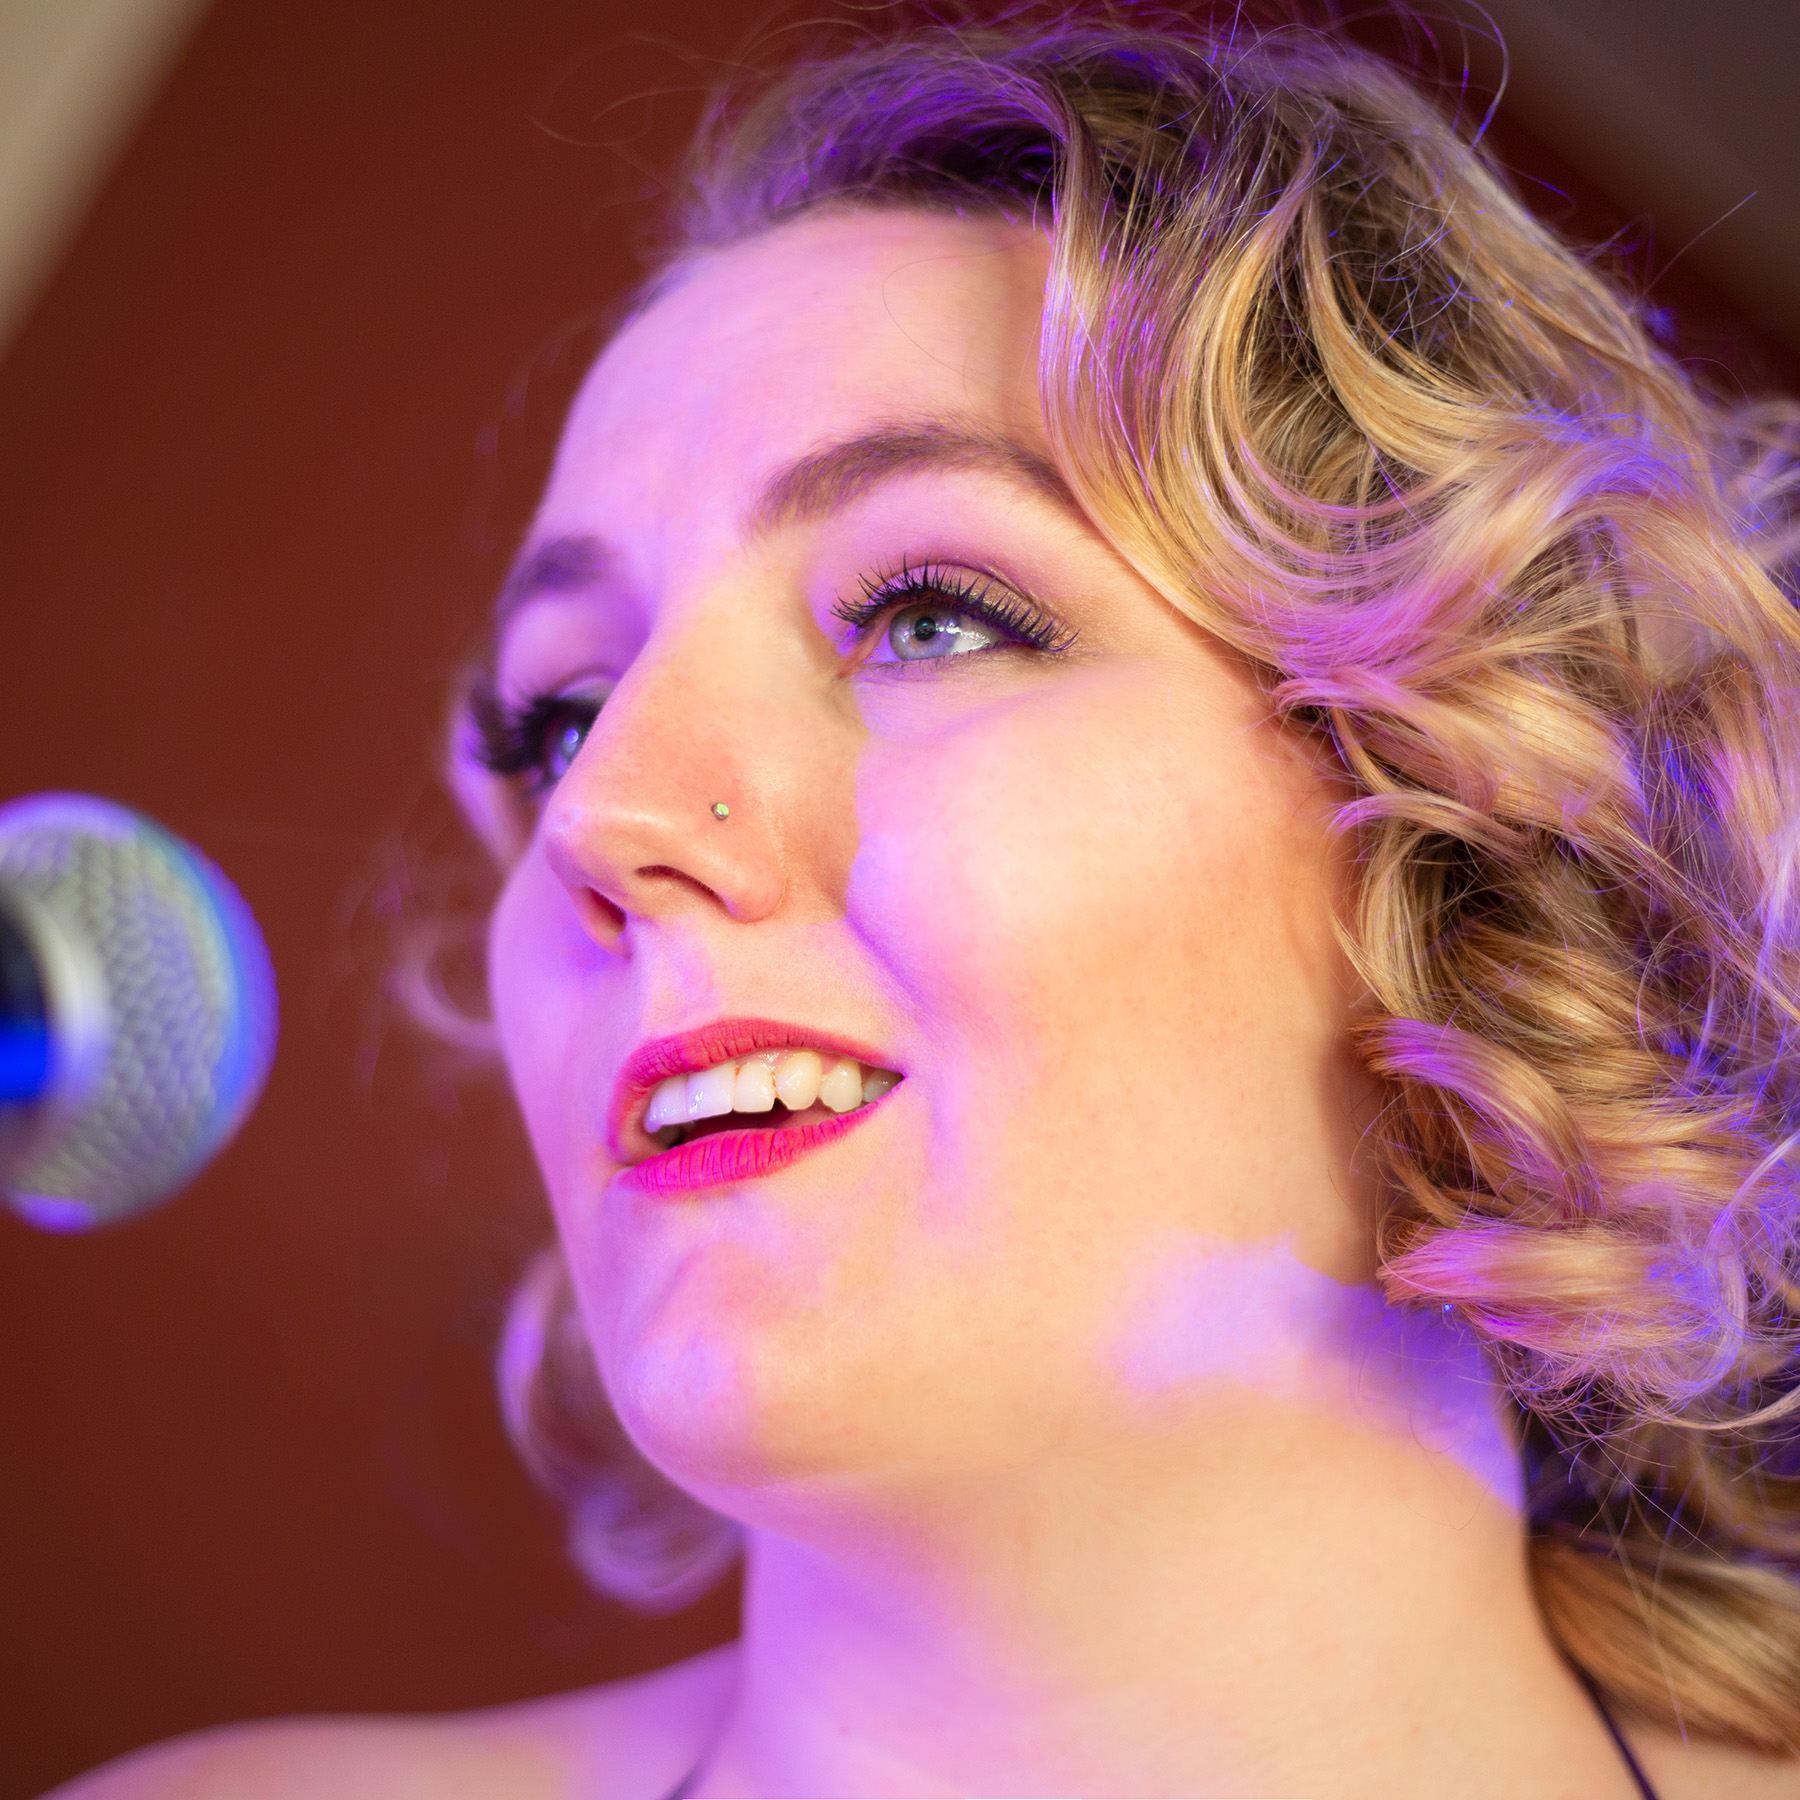 A closeup headshot of a white nonbinary person with blond ringlets, long lashes and a small crystal nose stud, singing into a microphone onstage